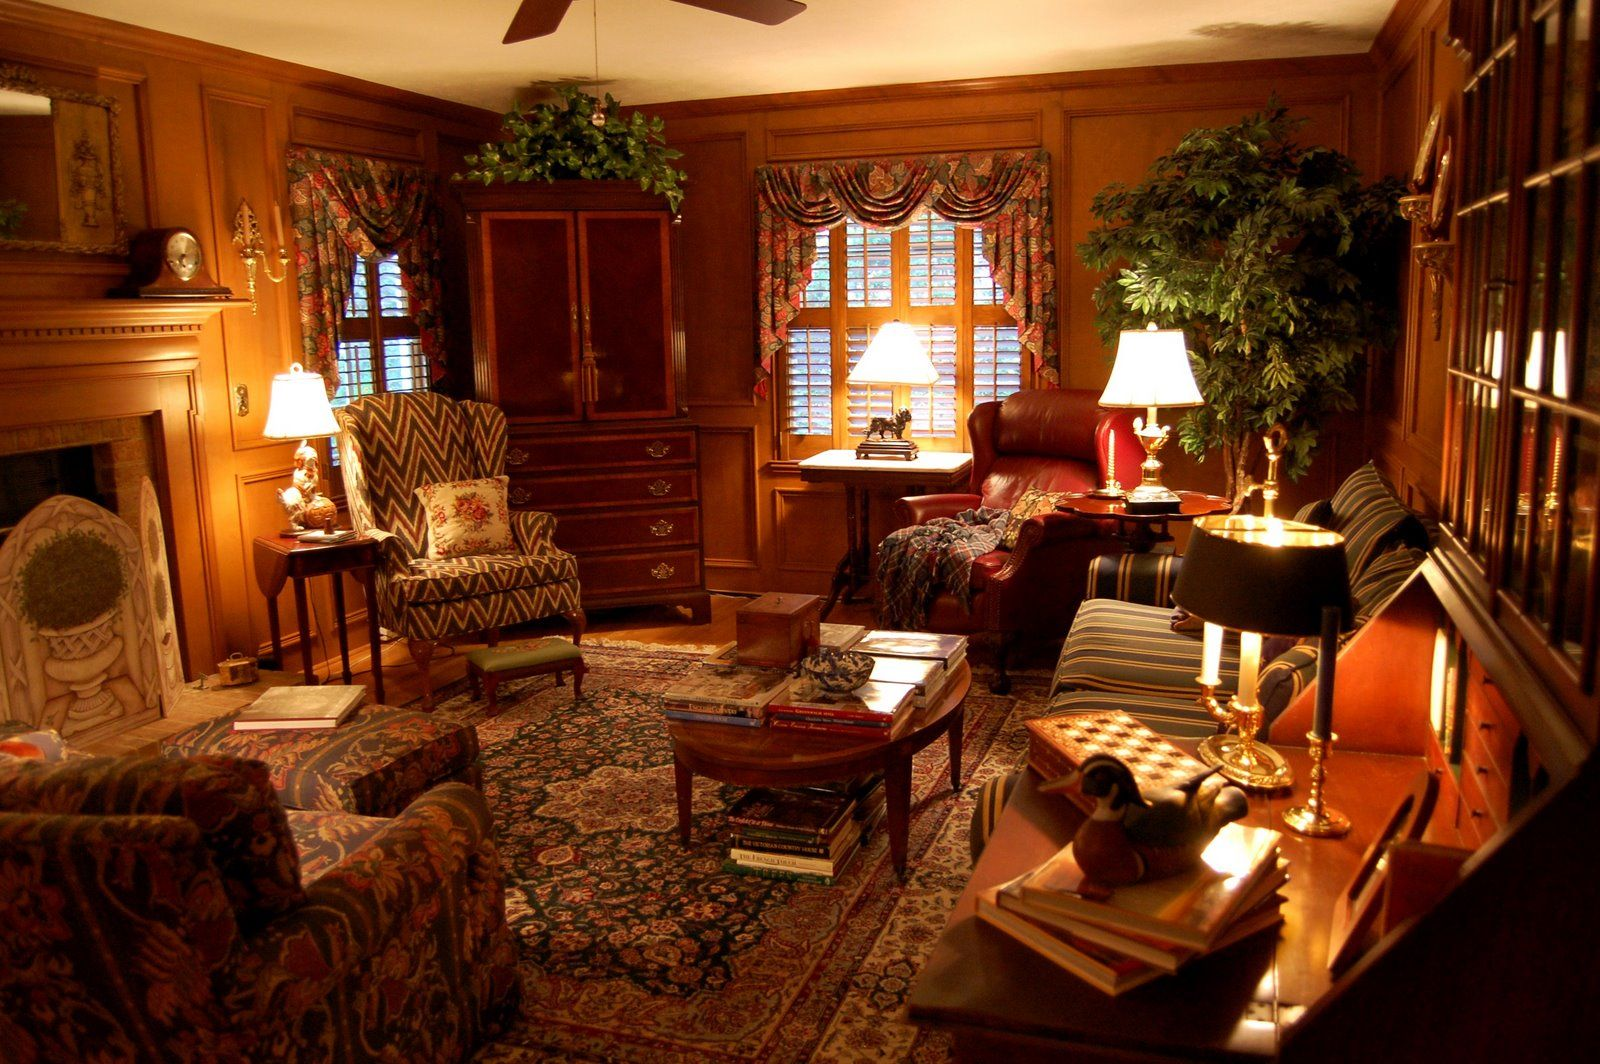 Decorating english country style english country style - Decorating living room country style ...